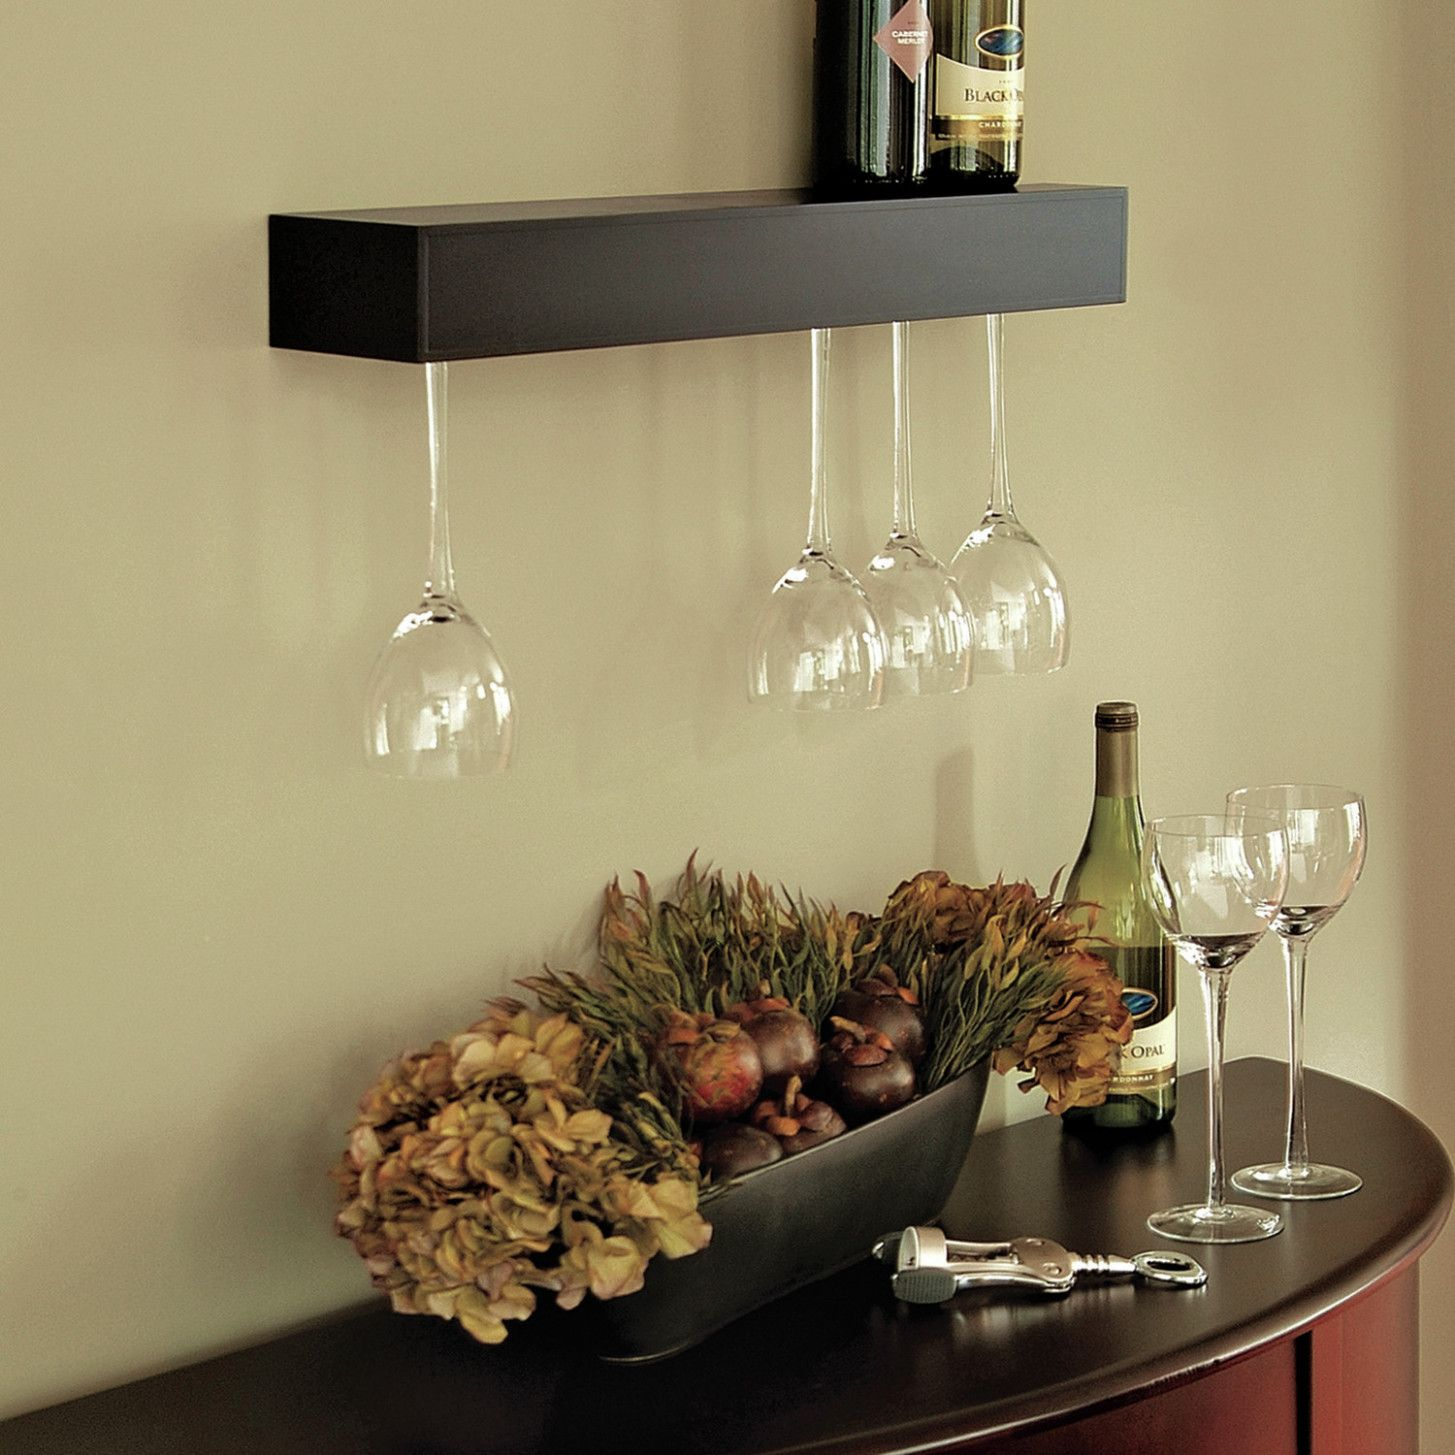 Incredible Wall Mounted Wine Glass Holder Post Tags Wine Glass Shelf Wine Glass Rack Wine Glass Holder